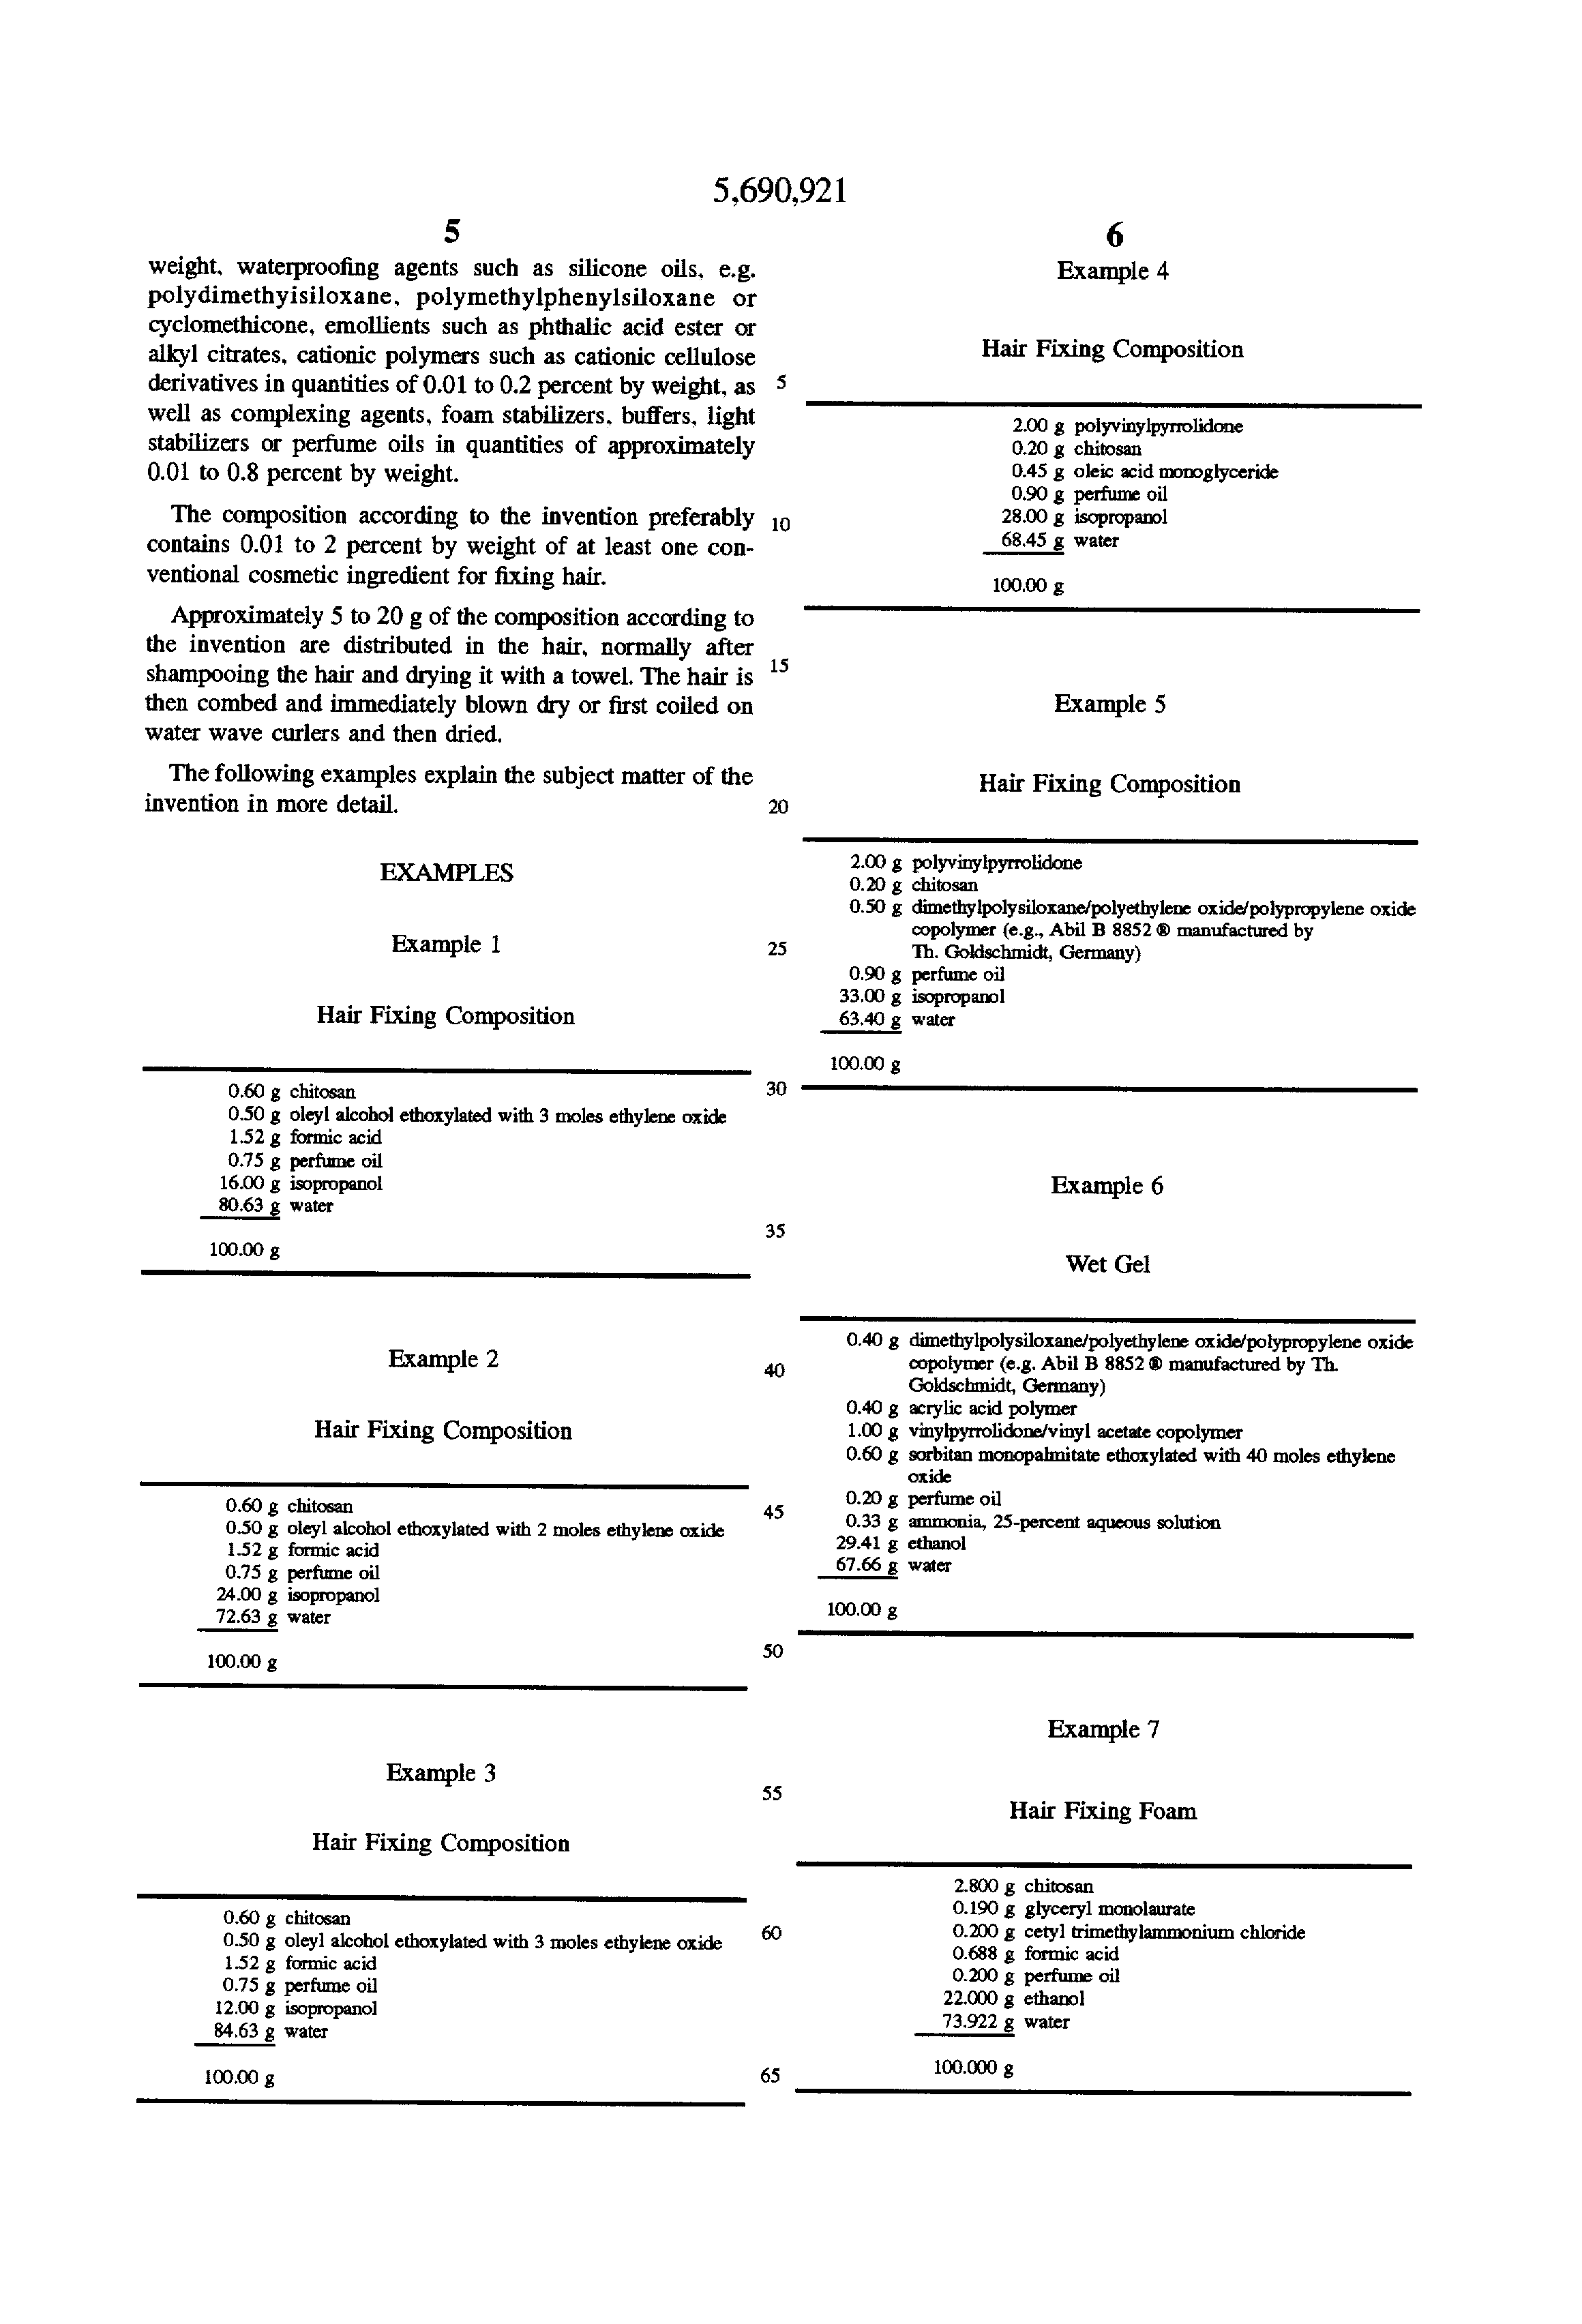 Patent US5690921 - Hair fixing composition in the form of an aqueous